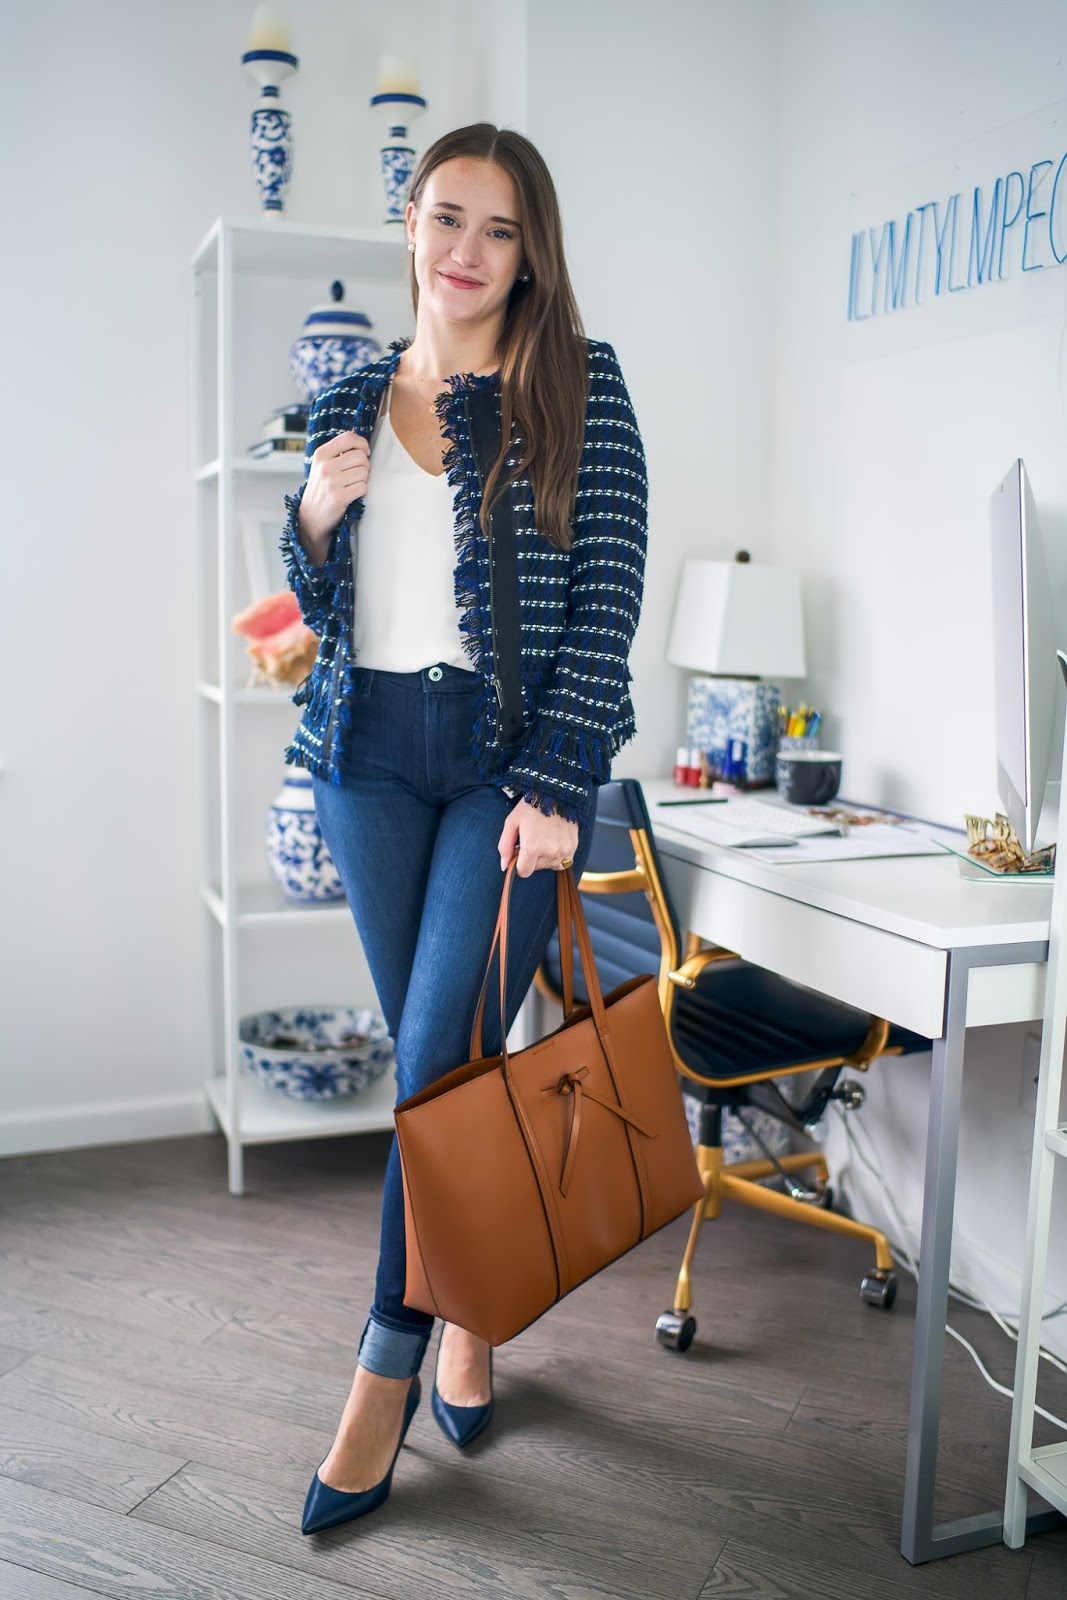 Casual Friday outfit by popular New York style blogger Covering the Bases